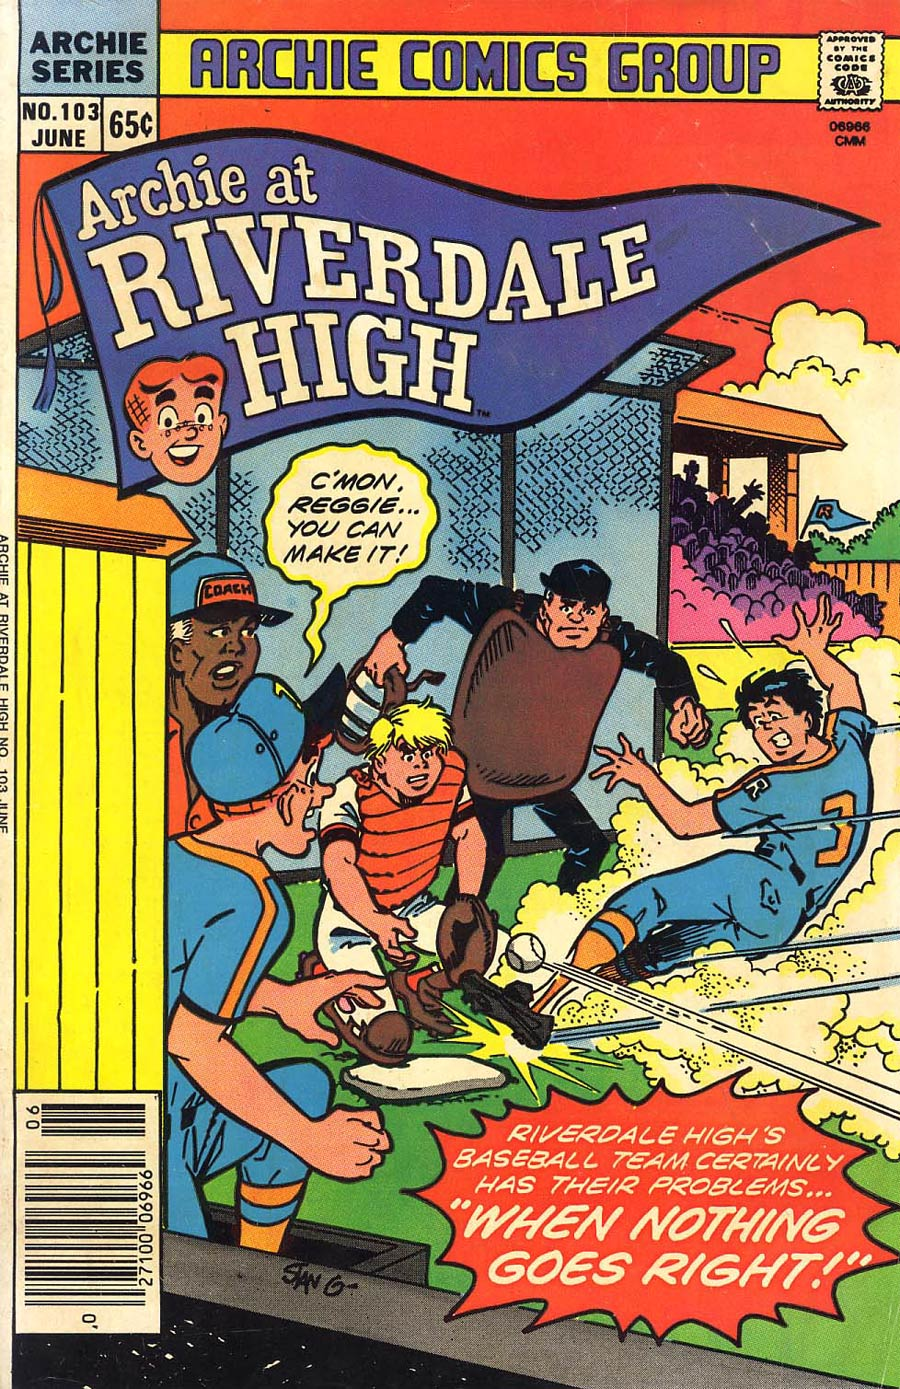 Archie At Riverdale High #103